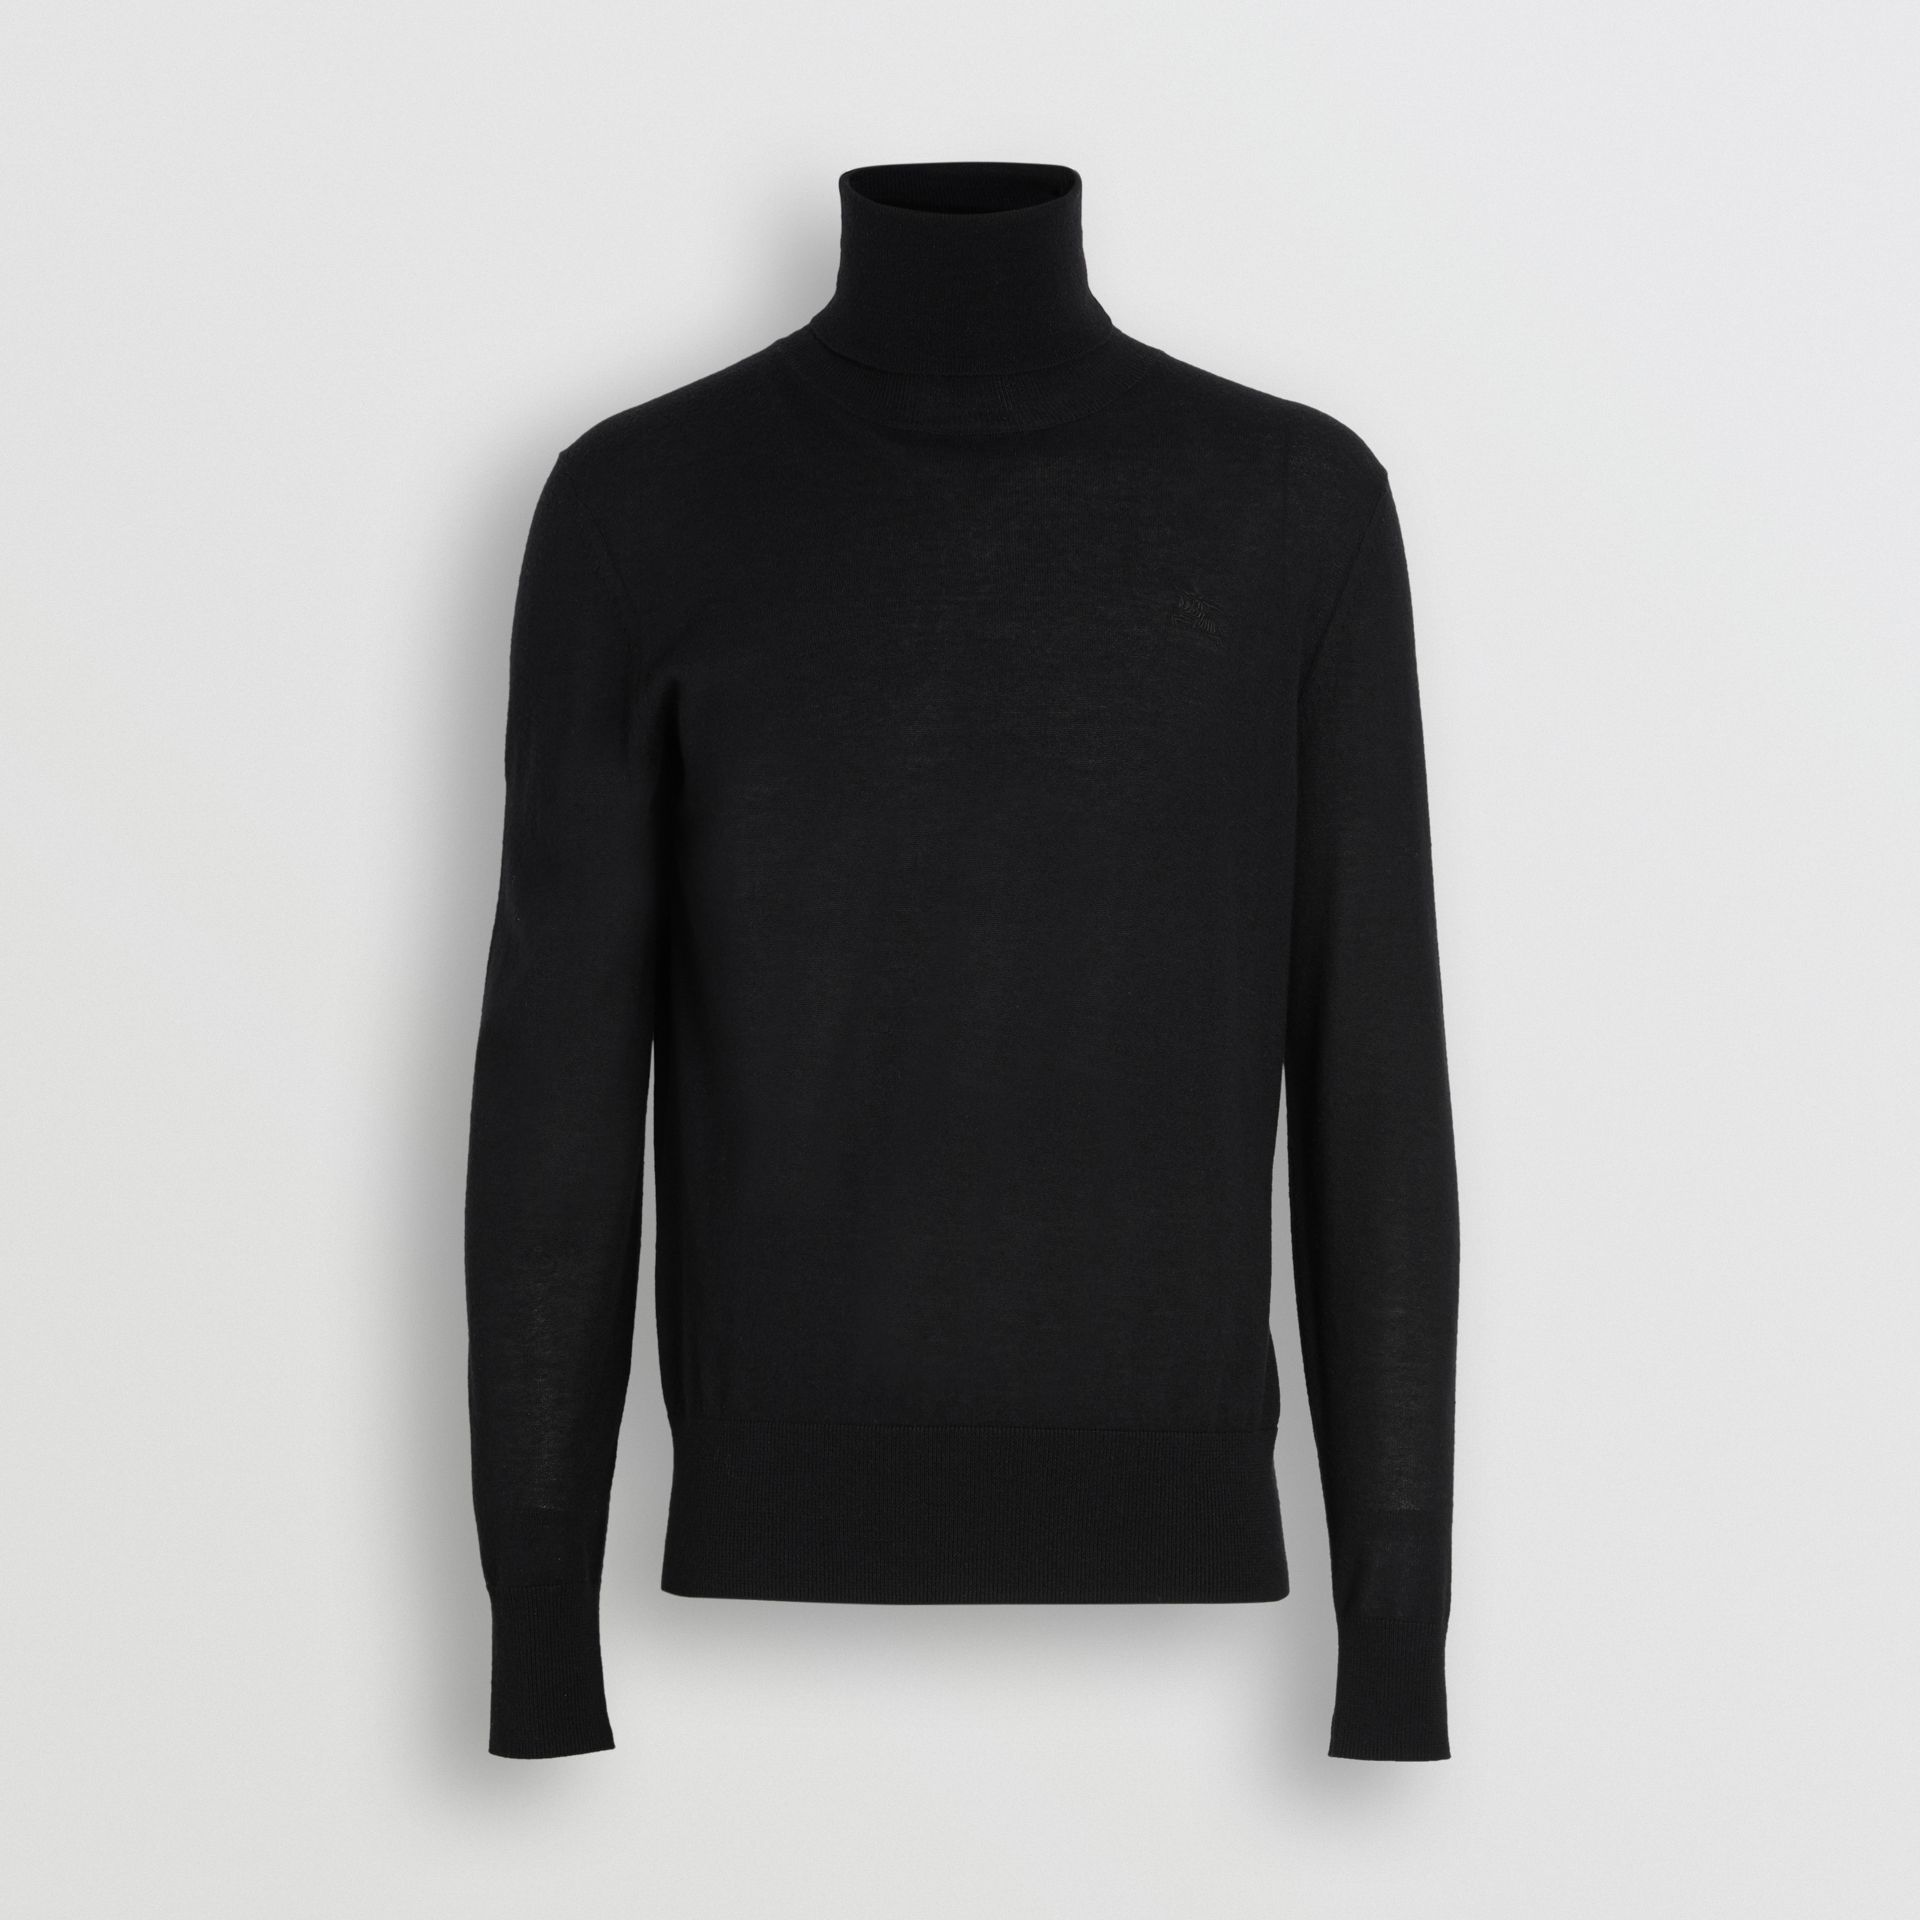 Cashmere Silk Roll-neck Sweater in Black - Men | Burberry United States - gallery image 3